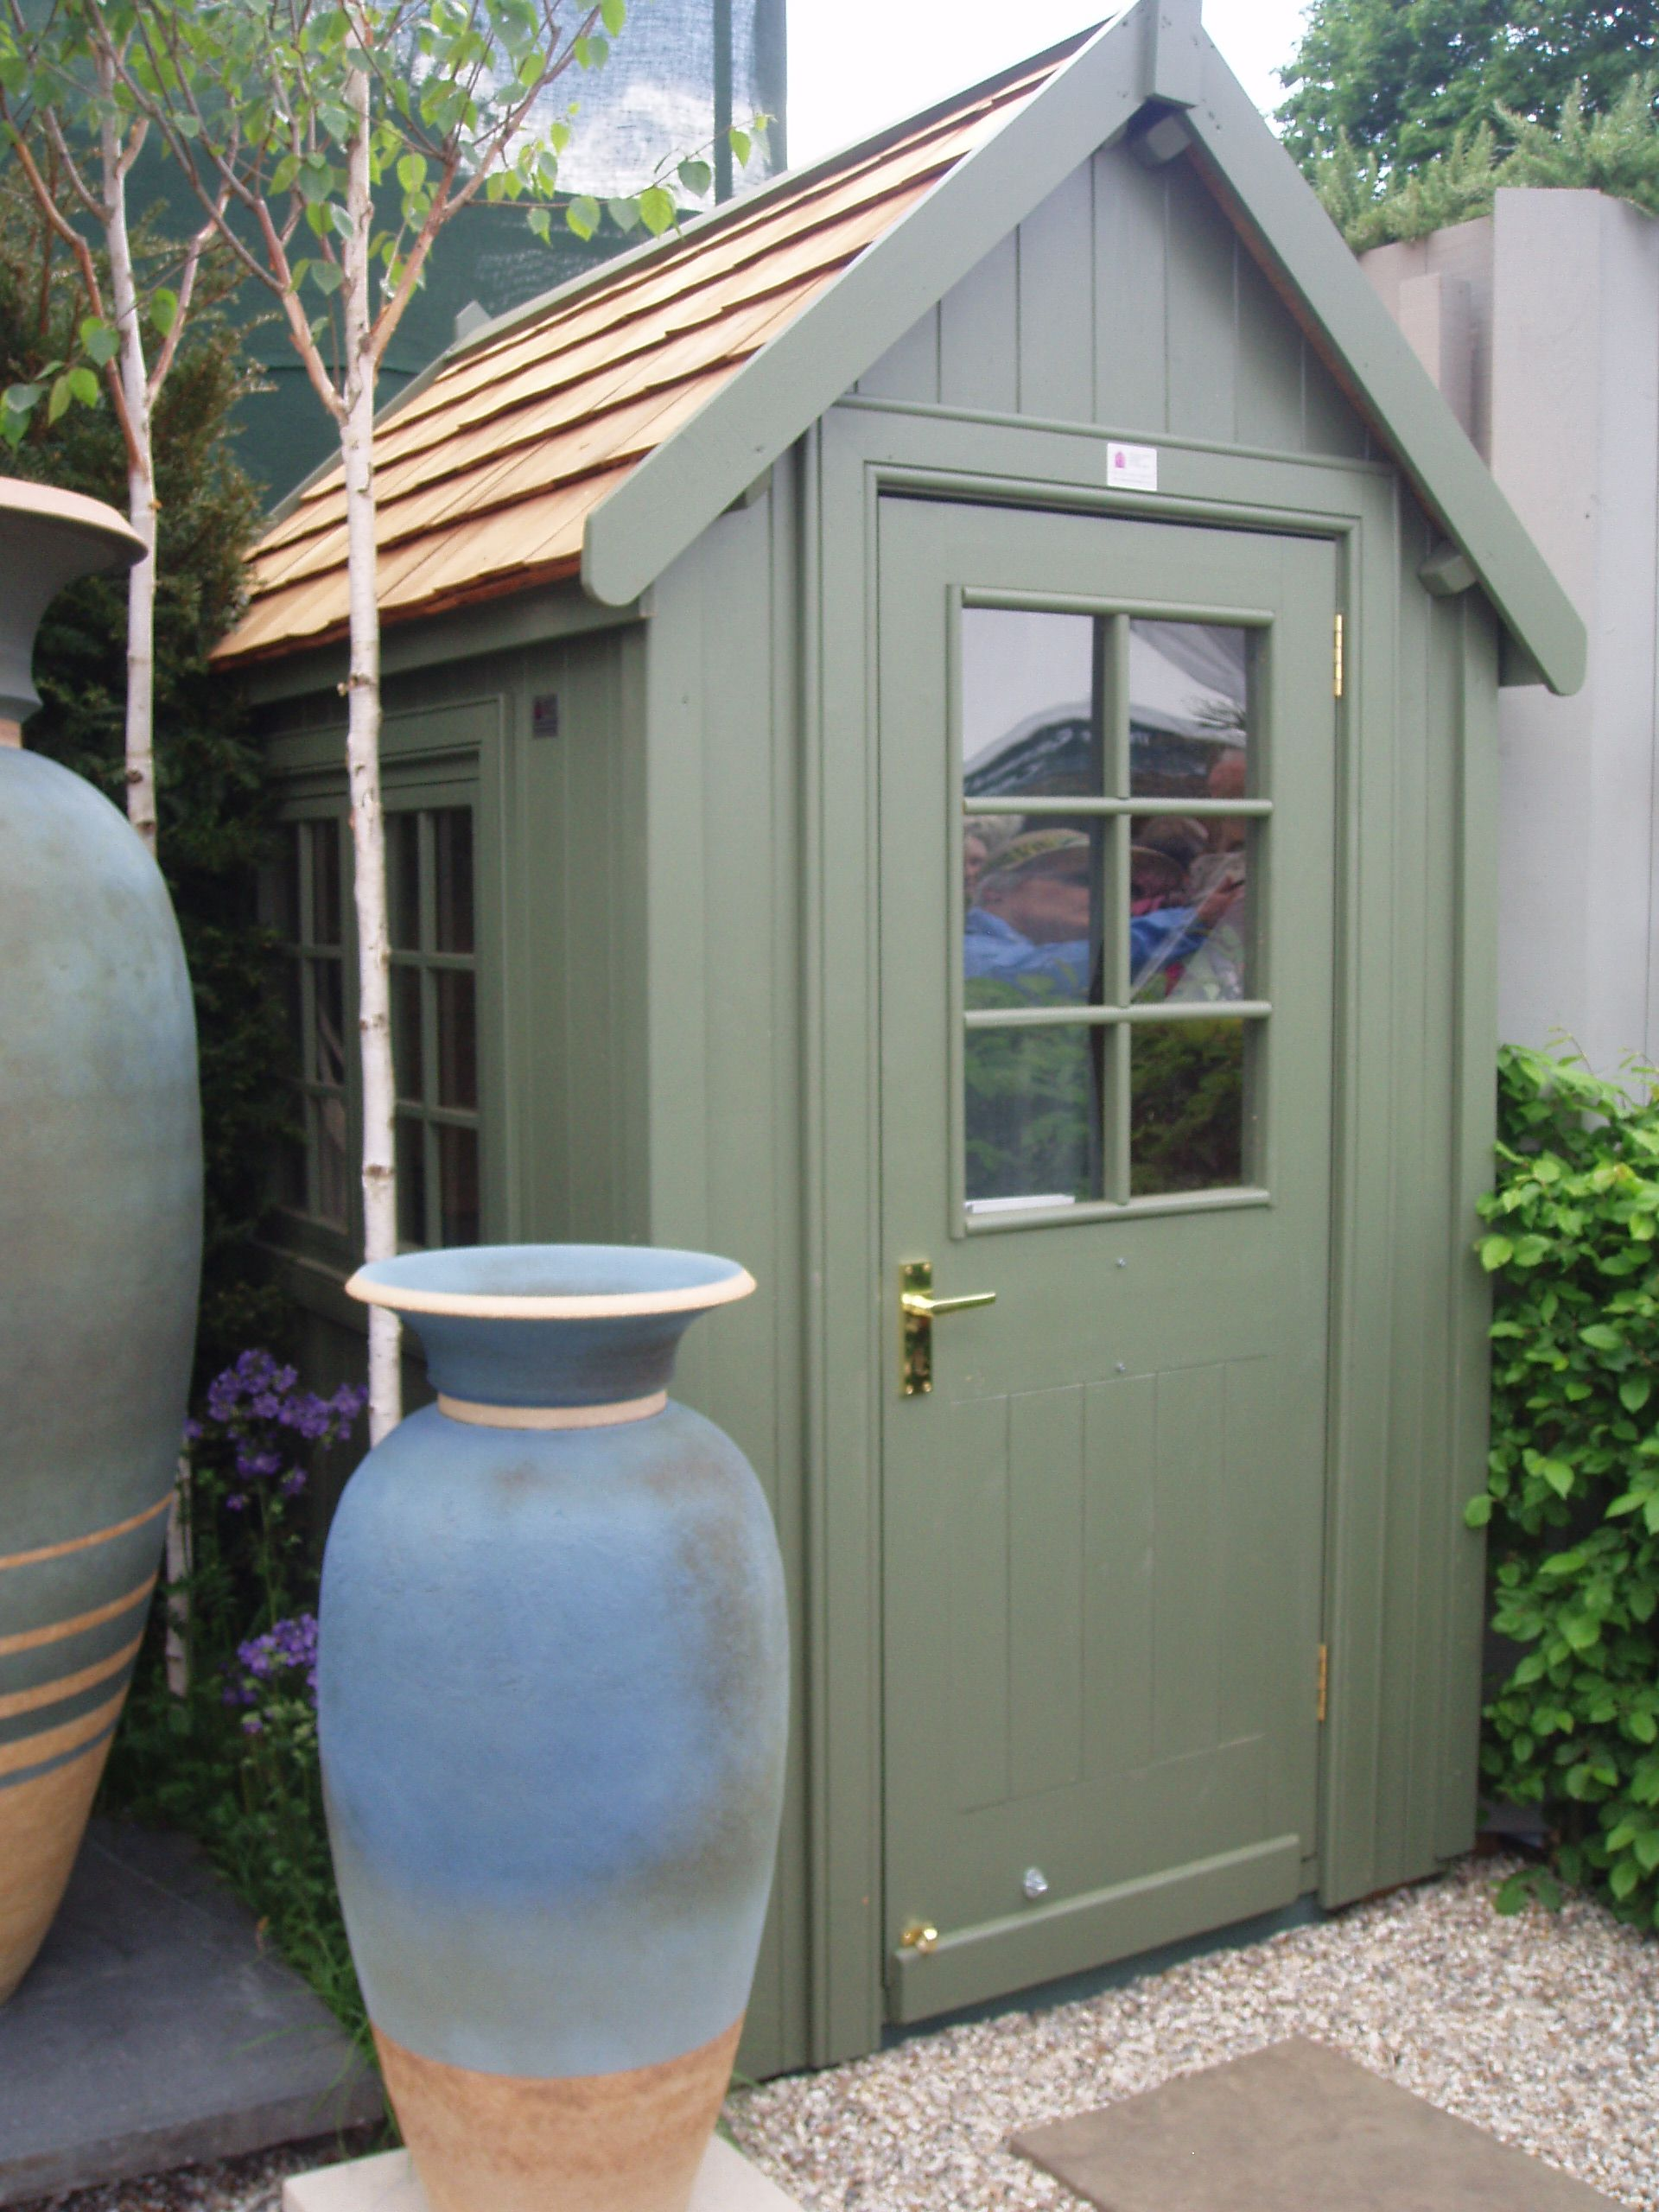 6x4 Potting Shed At Chelsea Flower Show Garden Shed Interiors Posh Sheds Shed